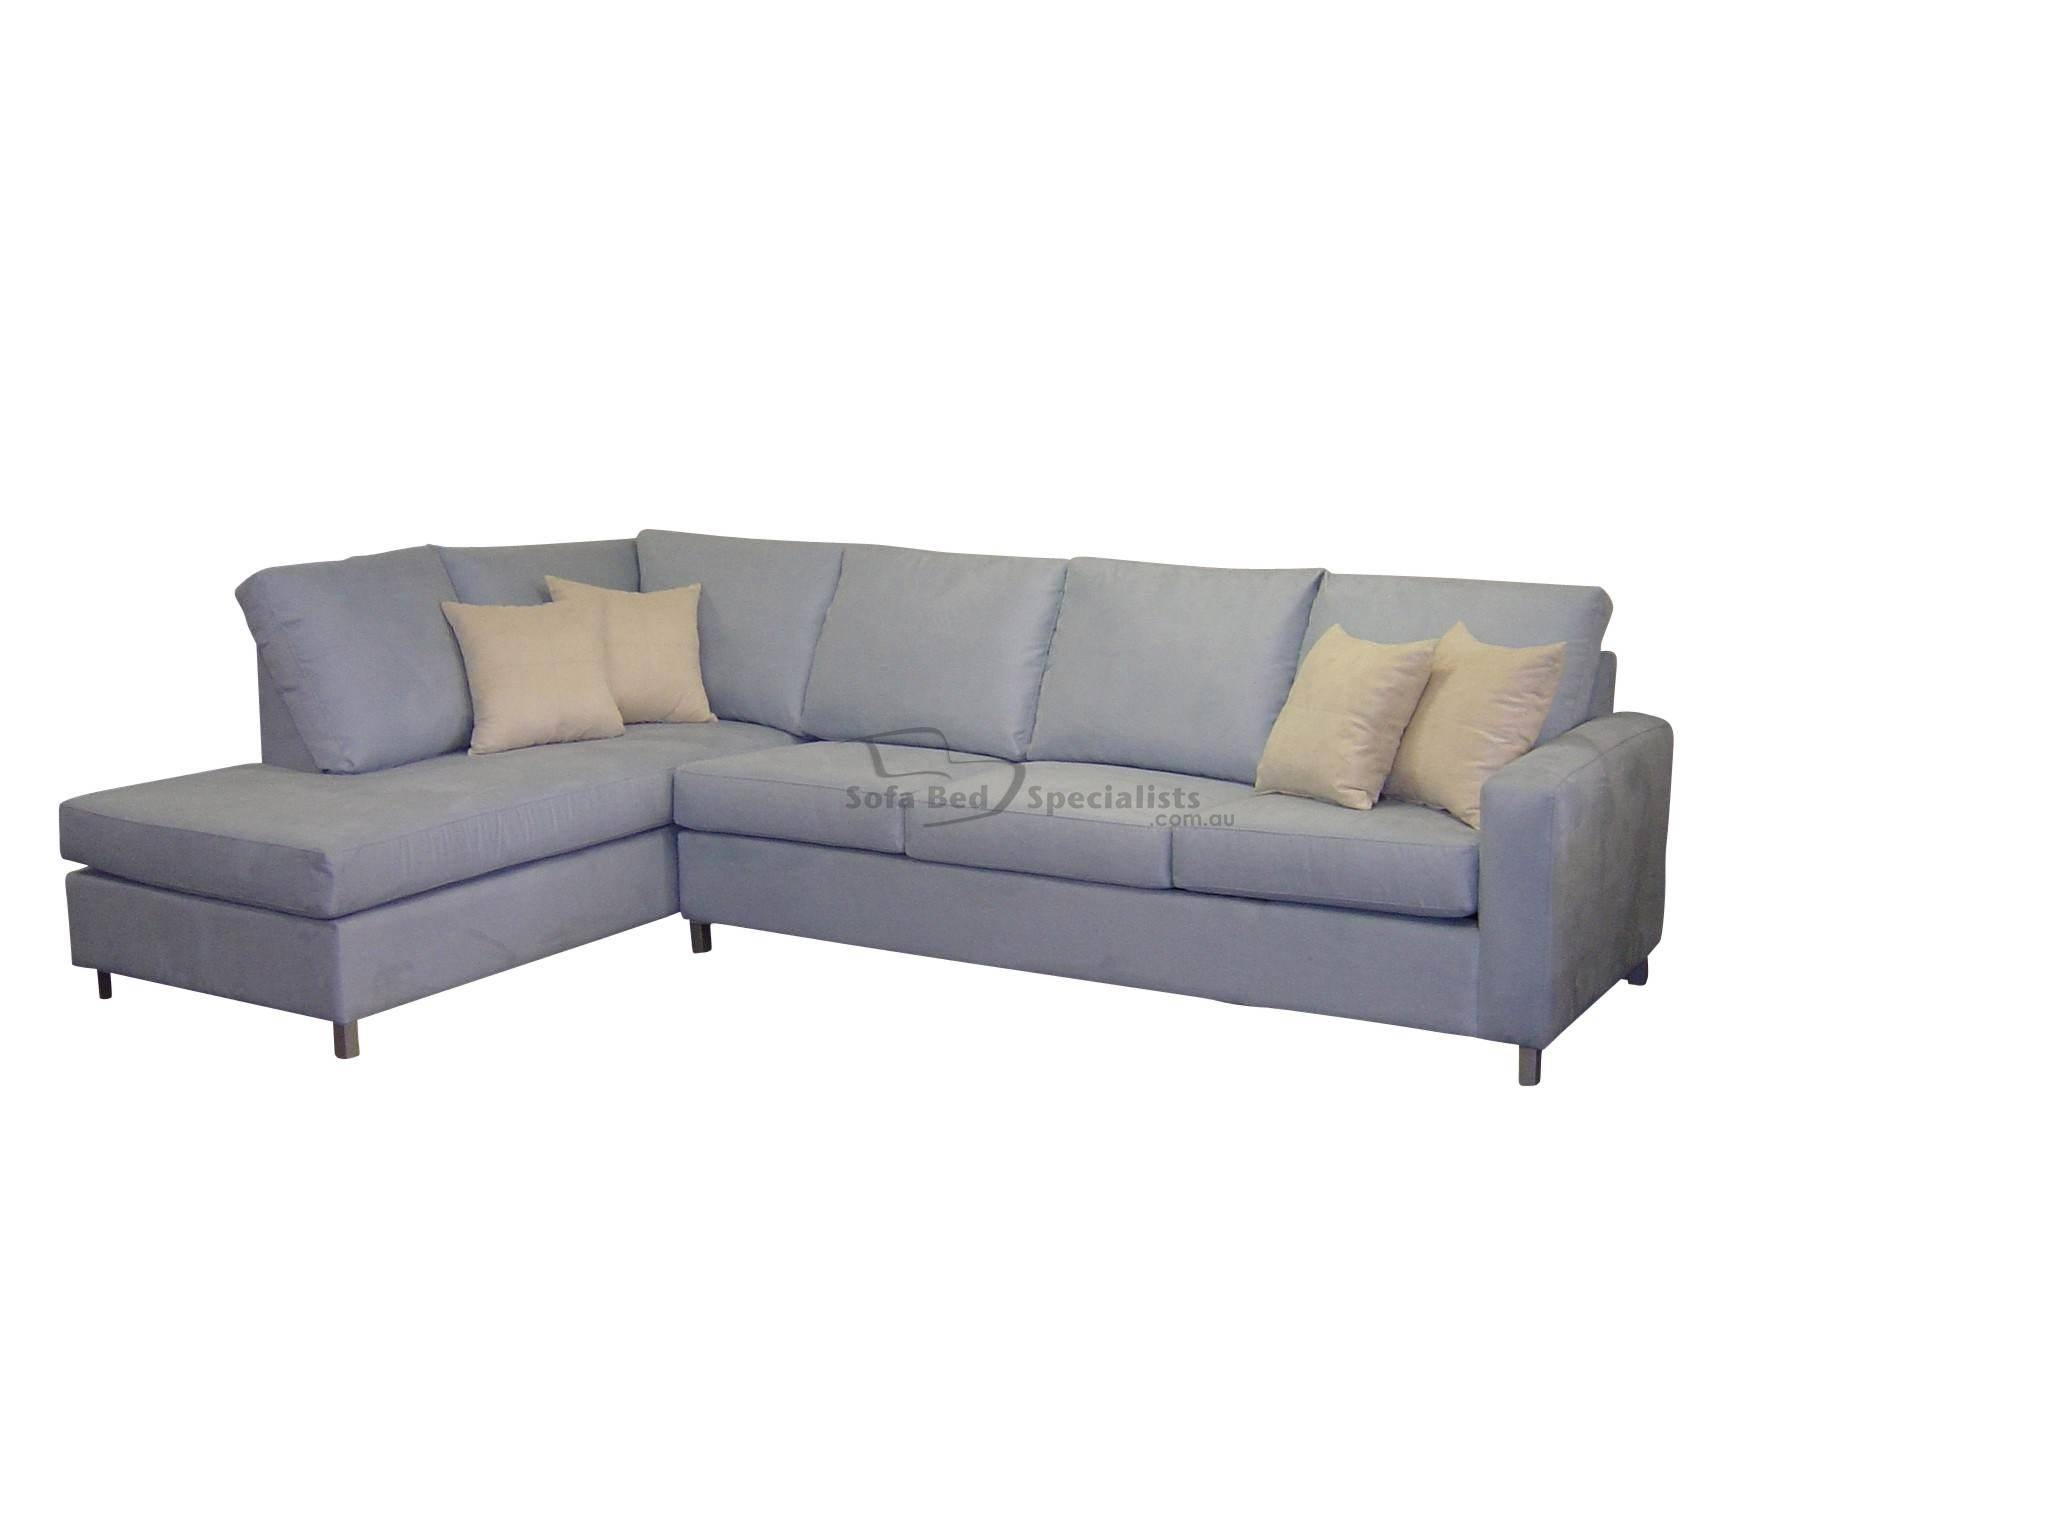 Sofas Center : Modular Sofabed Double Sydney Or Sofa Specialists throughout Small Modular Sofas (Image 25 of 25)